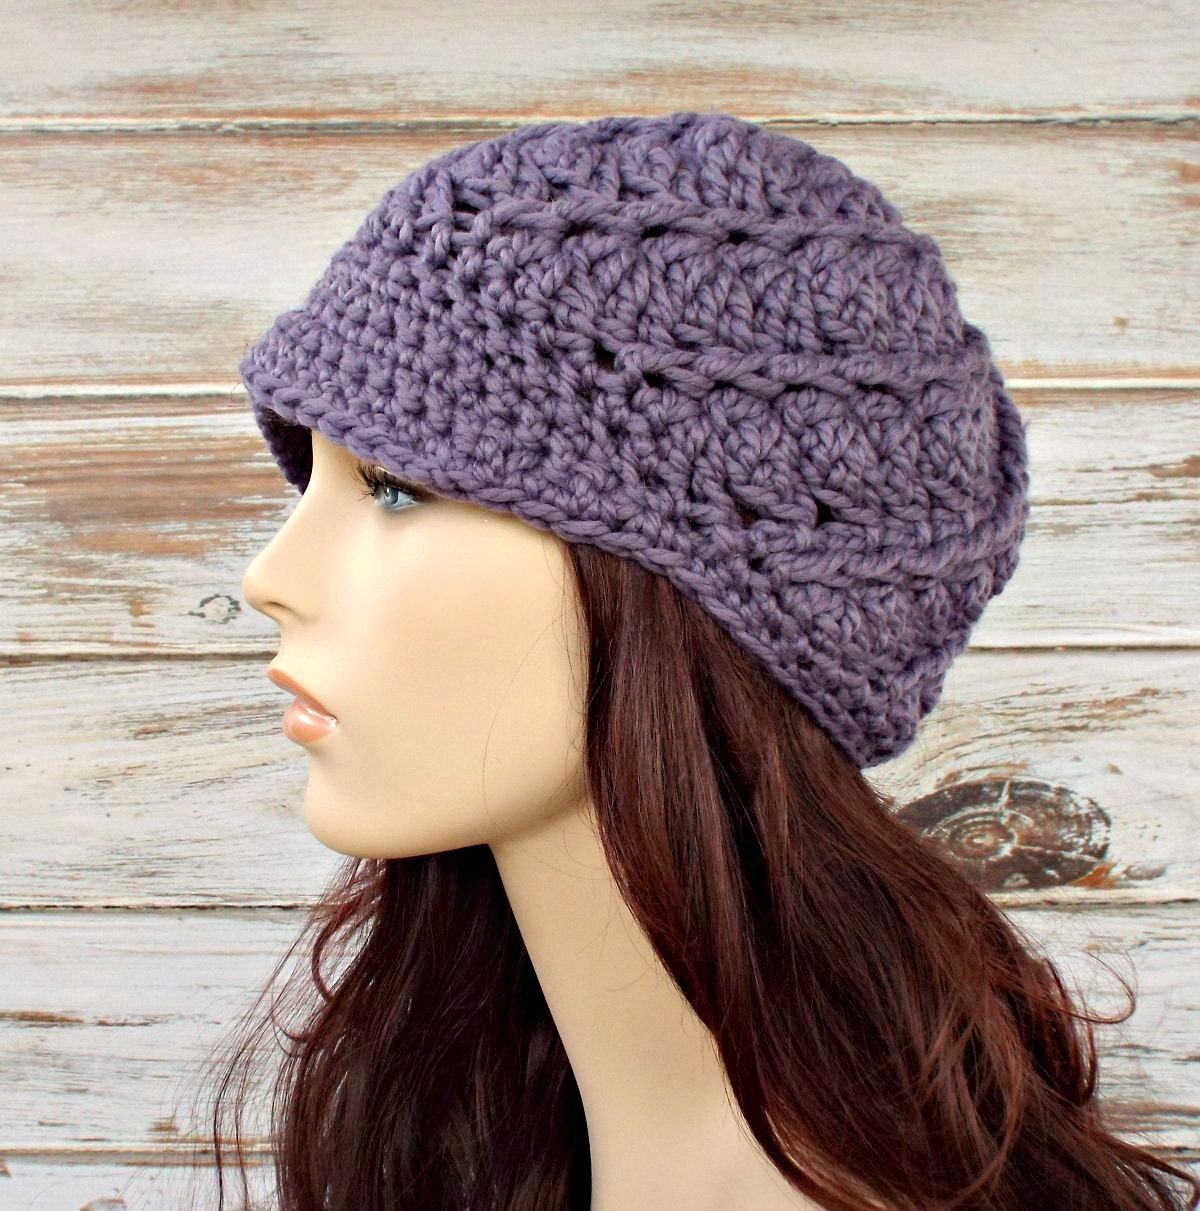 Crochet Hat Pattern Download : Instant Download Crochet Pattern Crochet Hat Pattern for